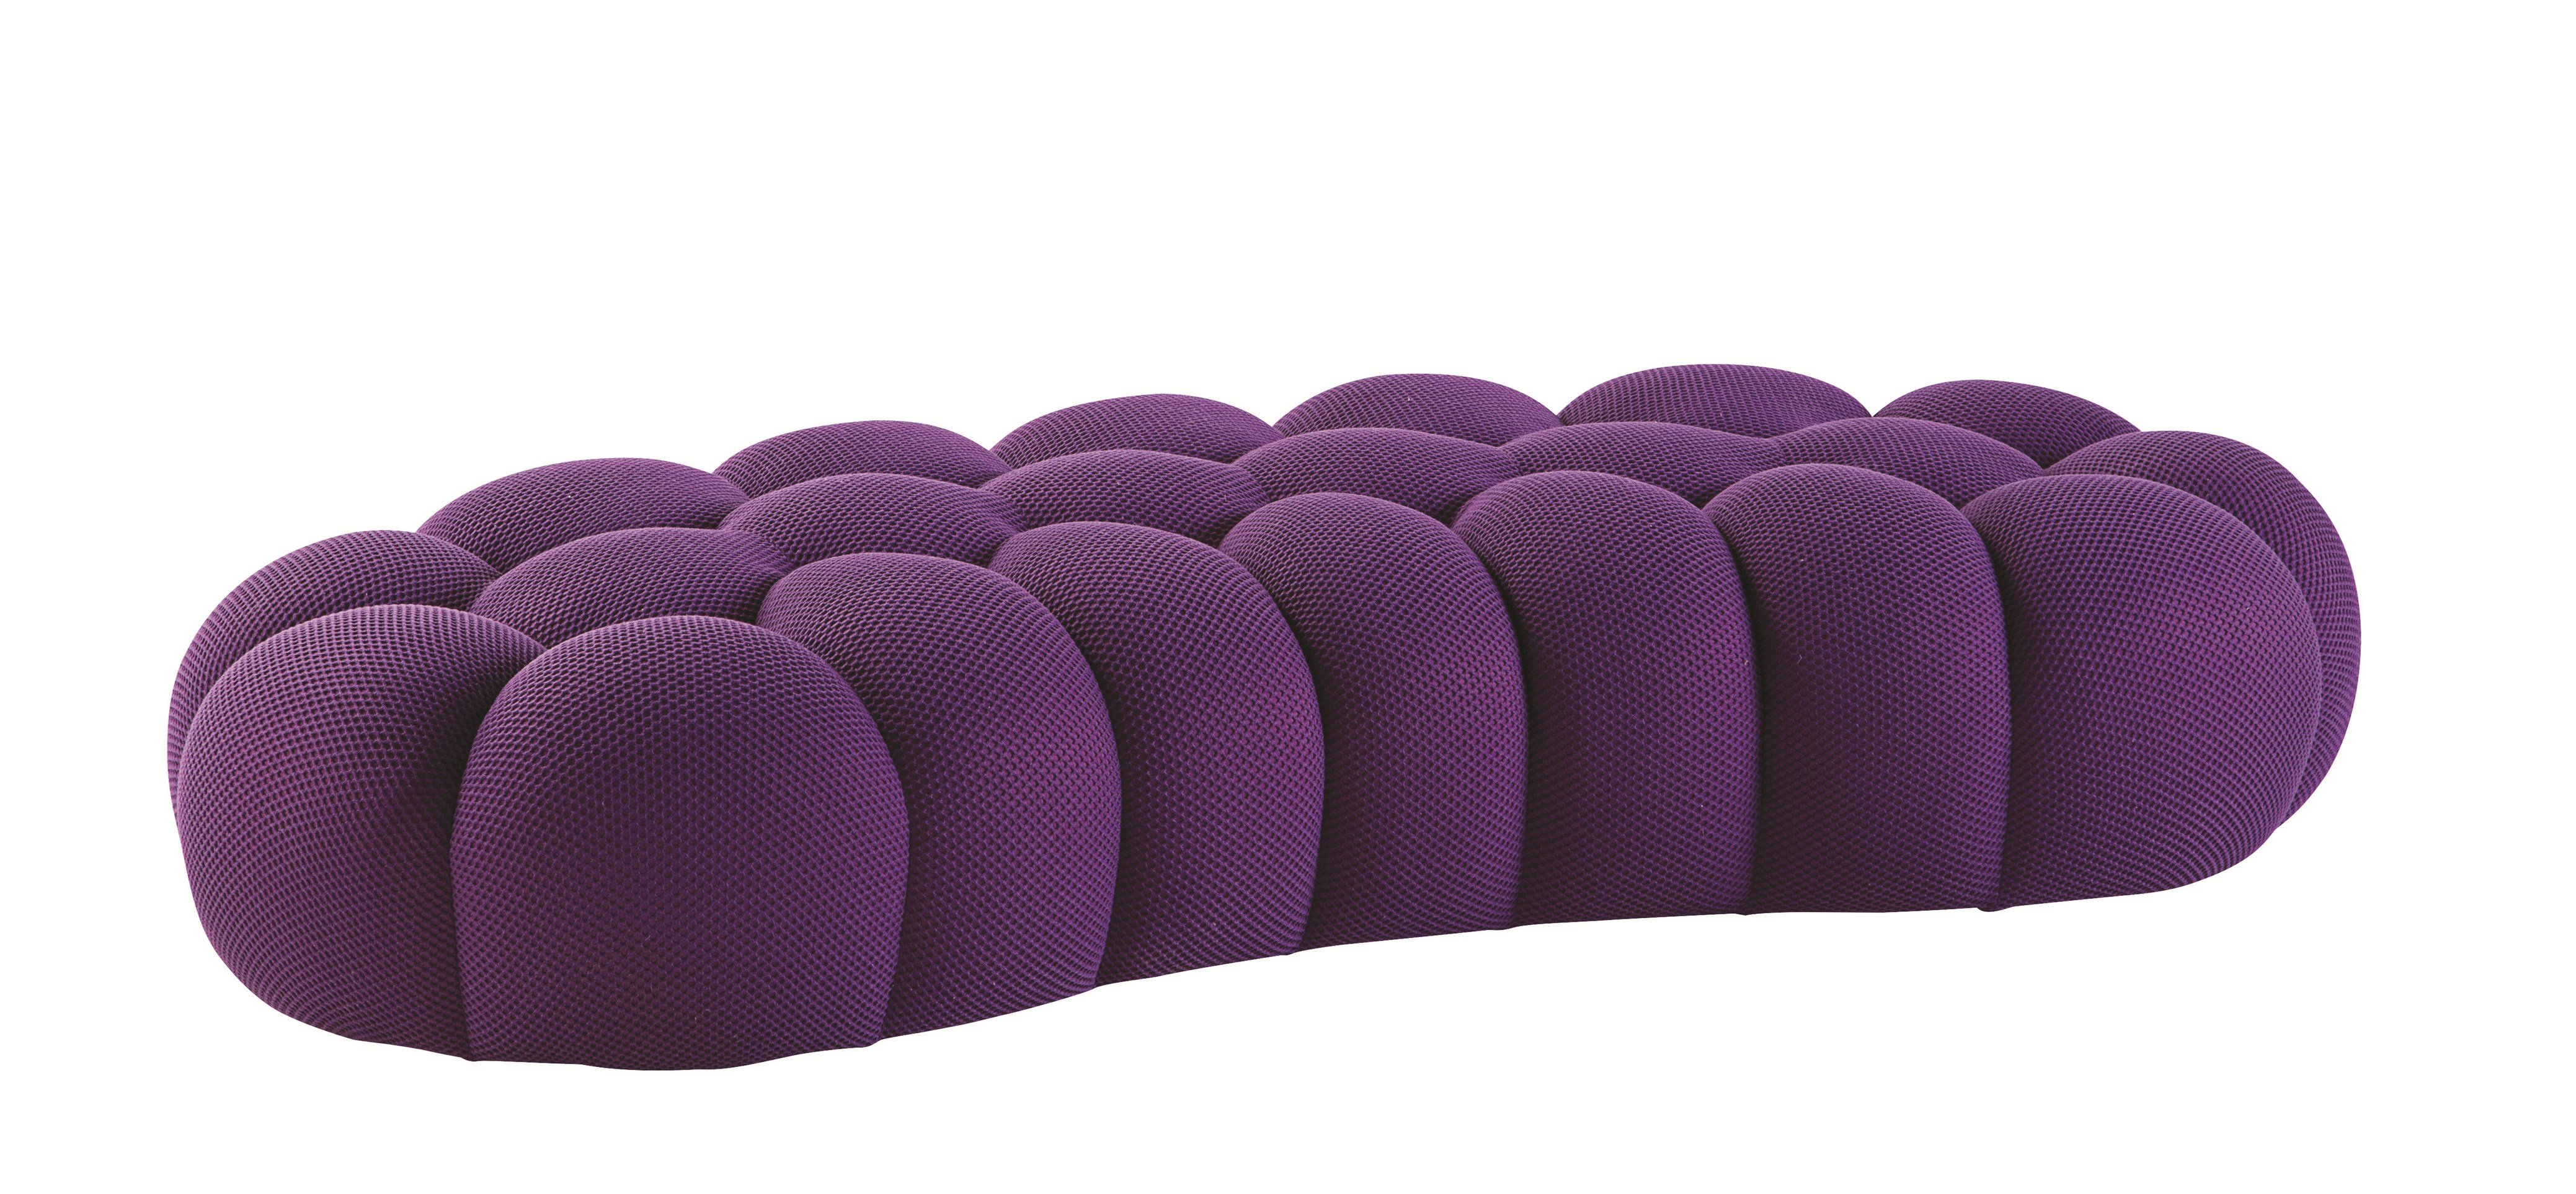 bubble pouf by roche bobois design sacha lakic. Black Bedroom Furniture Sets. Home Design Ideas